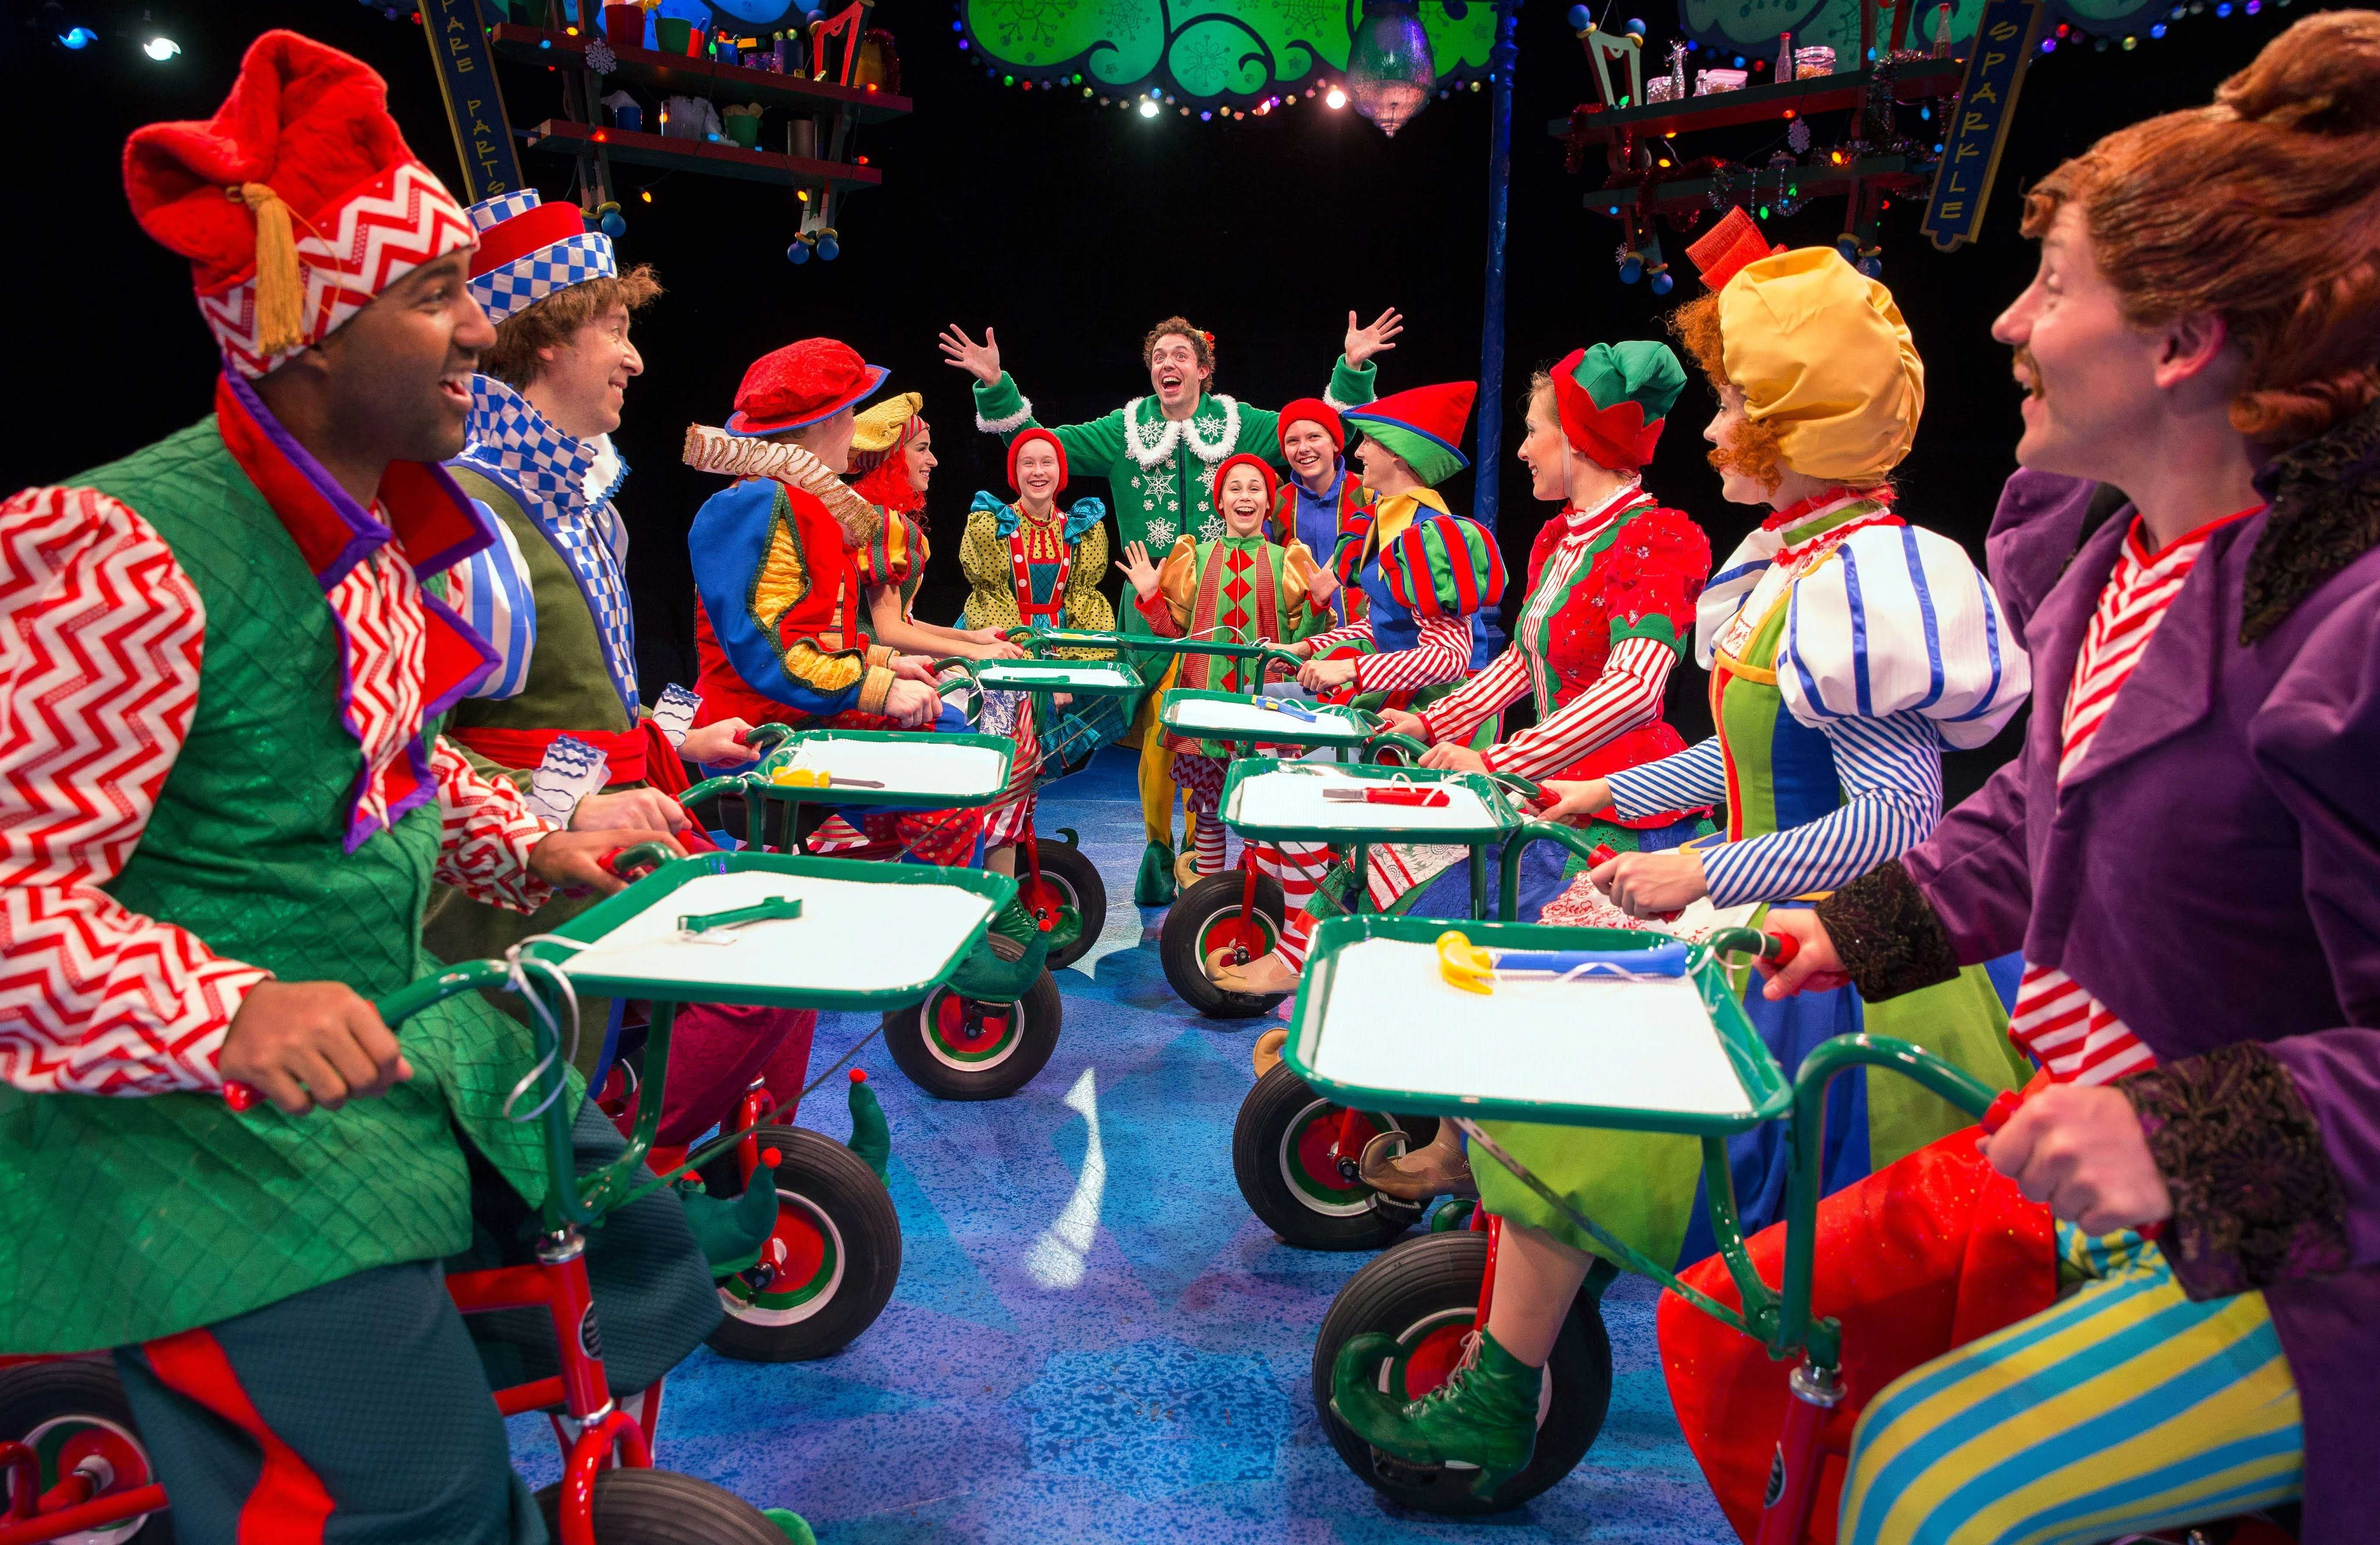 MarriottTheatre.com/Elf   847-634-0200 Elf: October 21 - December 31, 2015 A Very Special Gift! One of the most loved holiday movies is now a full grown Broa...